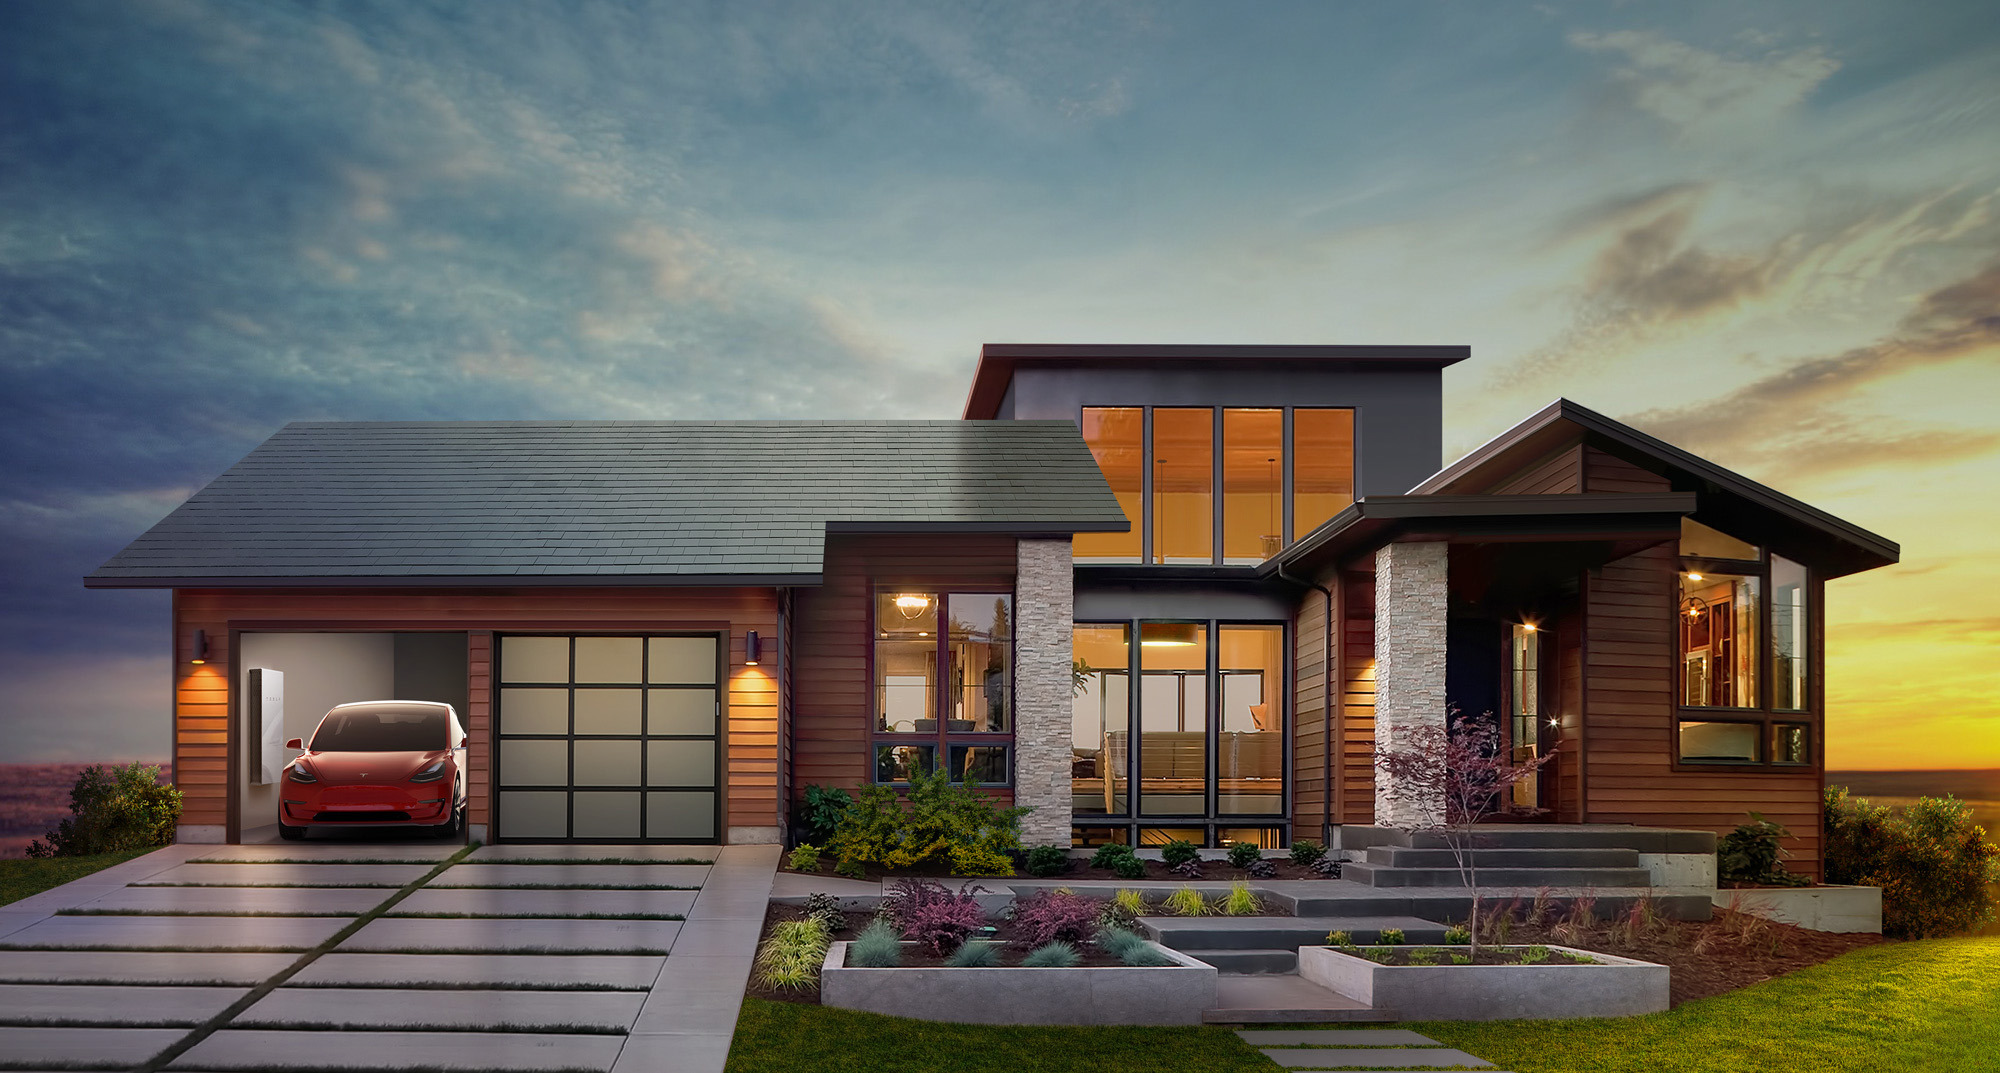 Tesla Shingles Cost >> Price Of Tesla S Solar Shingles May Not Be Through The Roof The